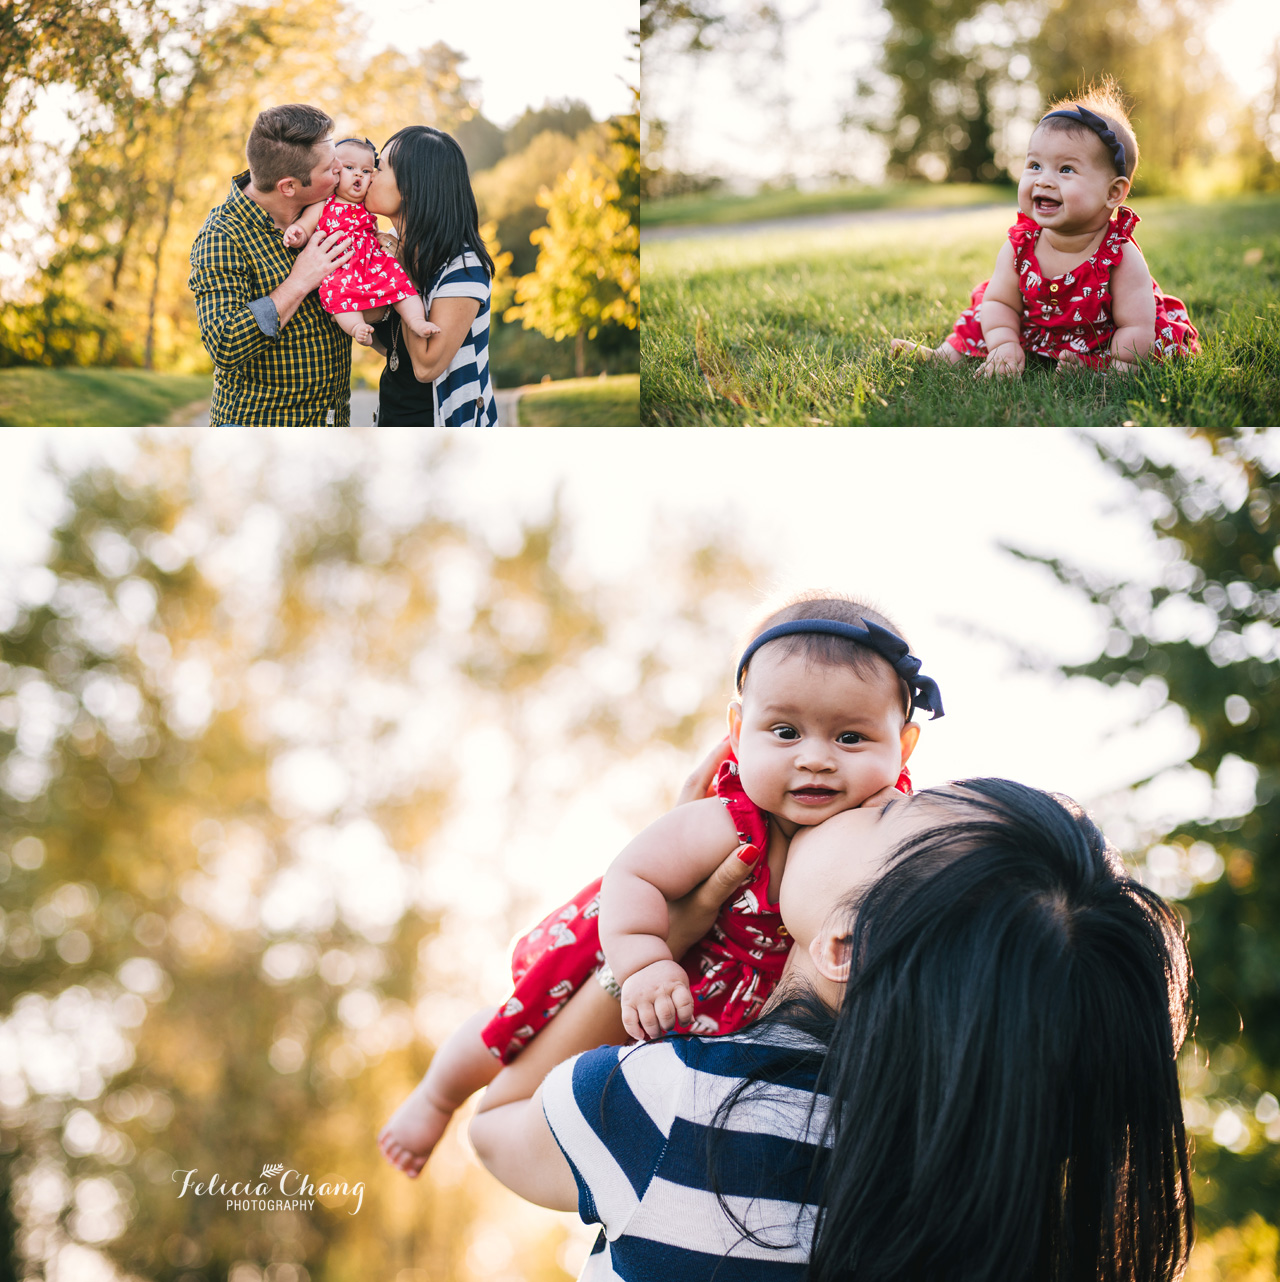 www.feliciachangphotography.com | Vancouver Newborn + Baby Photos | Storytelling Session